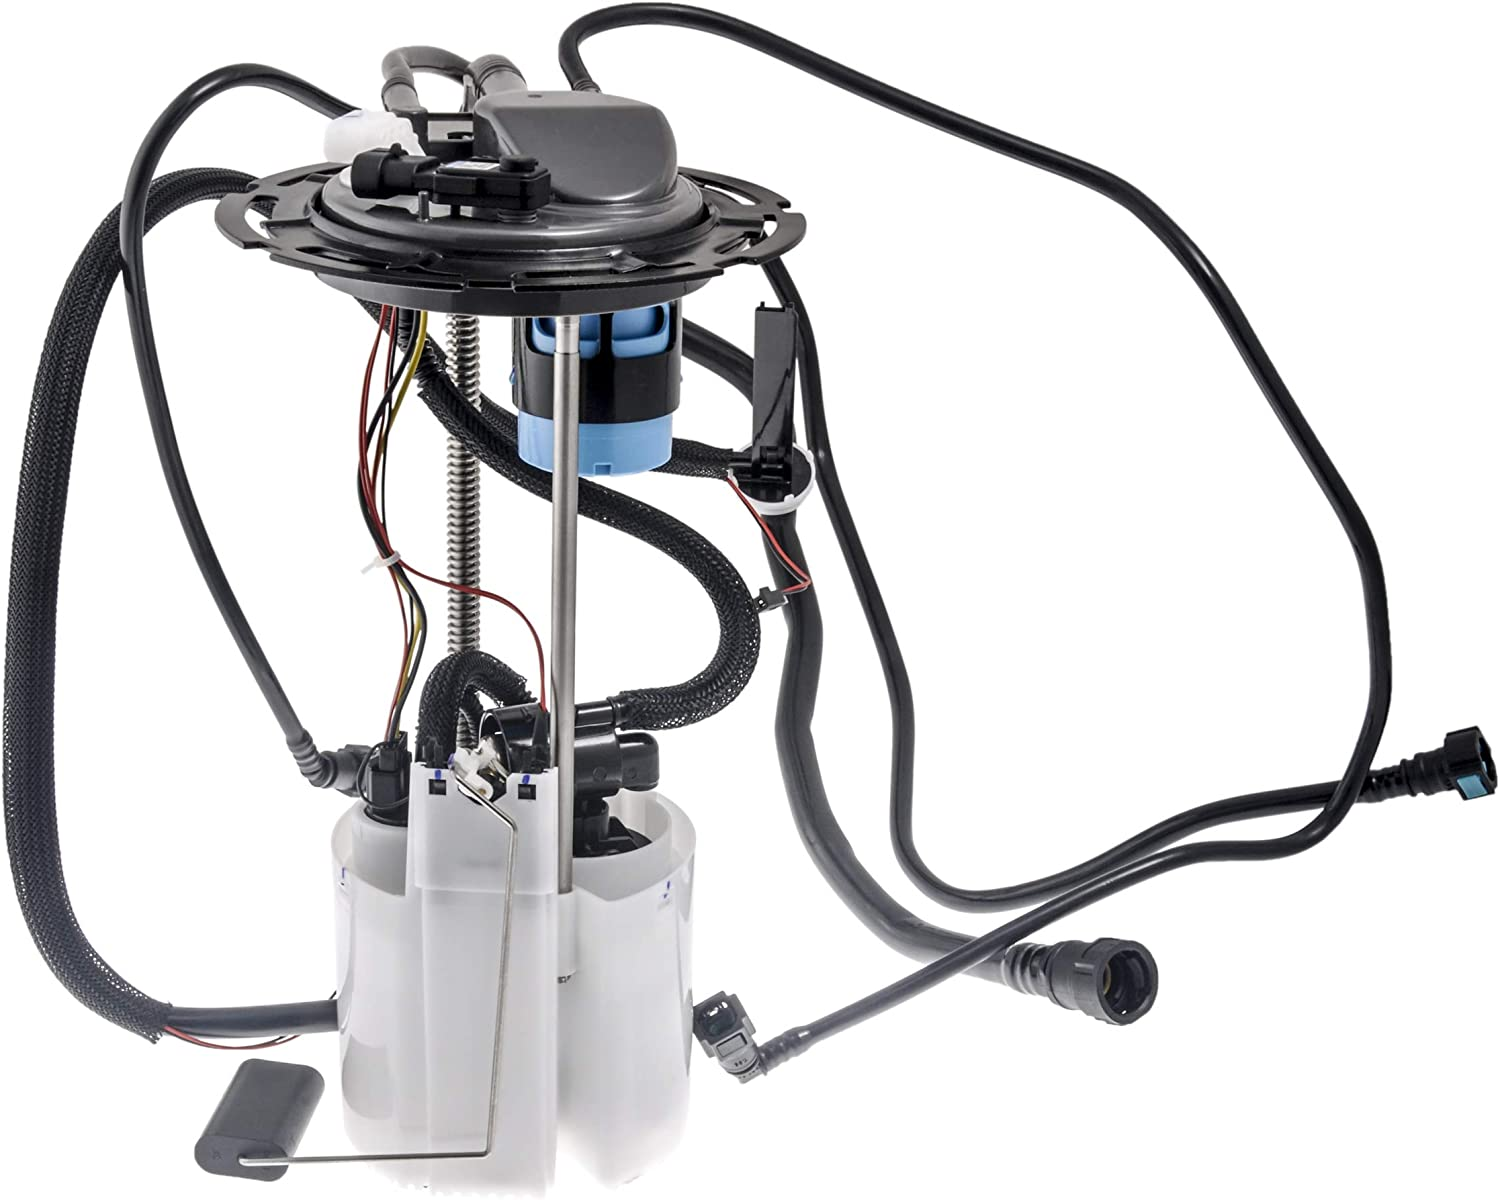 New Finally resale start Beauty products Premium High Performance 372GE Fuel Pump